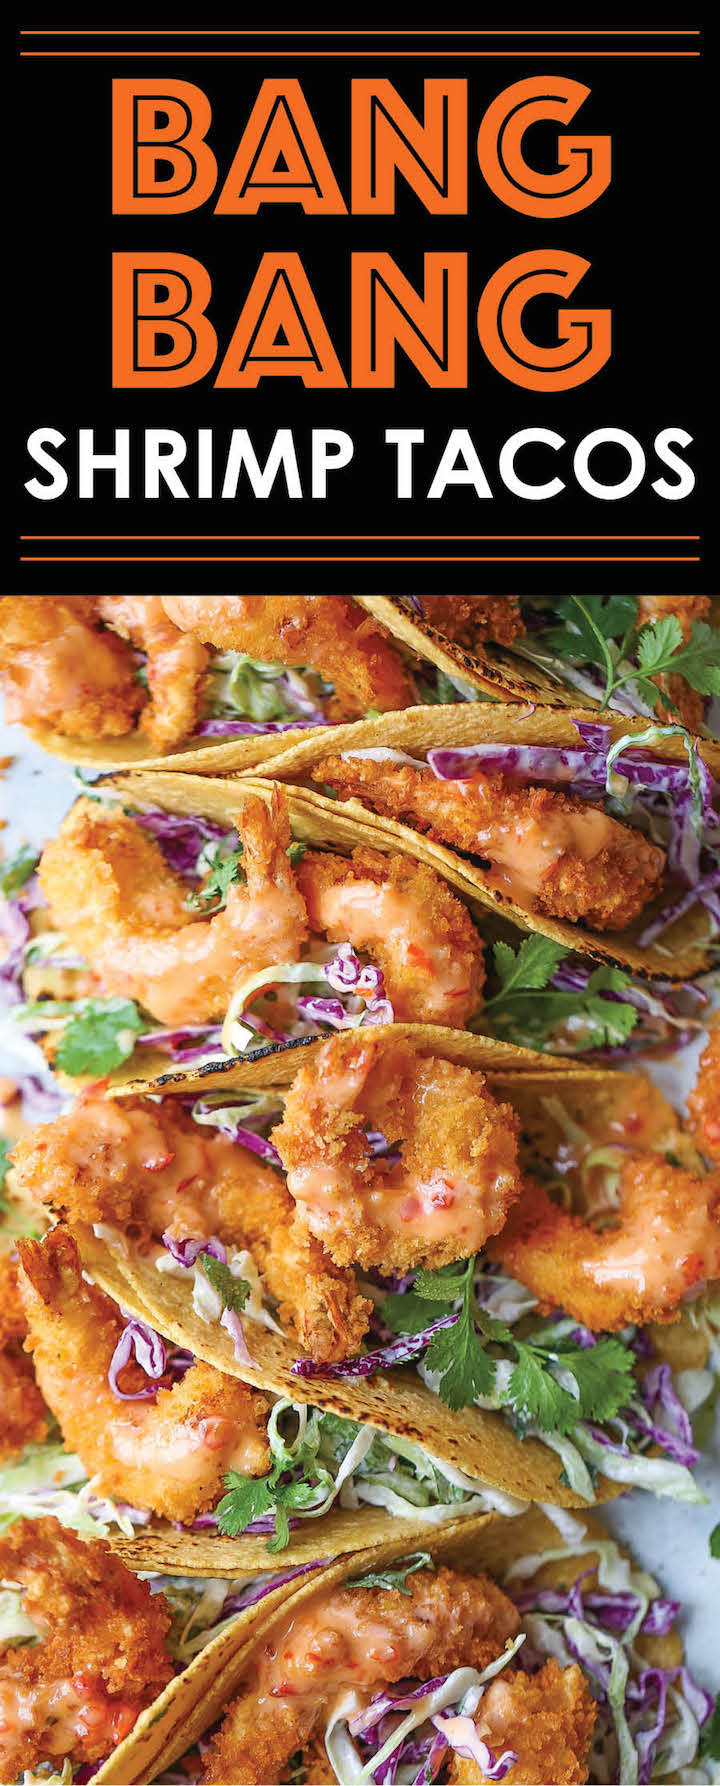 Bang Bang Shrimp Tacos - Super crisp shrimp tacos drizzled with the most amazing and epic sweet creamy chili sauce. It'll be hard to just stop at 1, or 10!